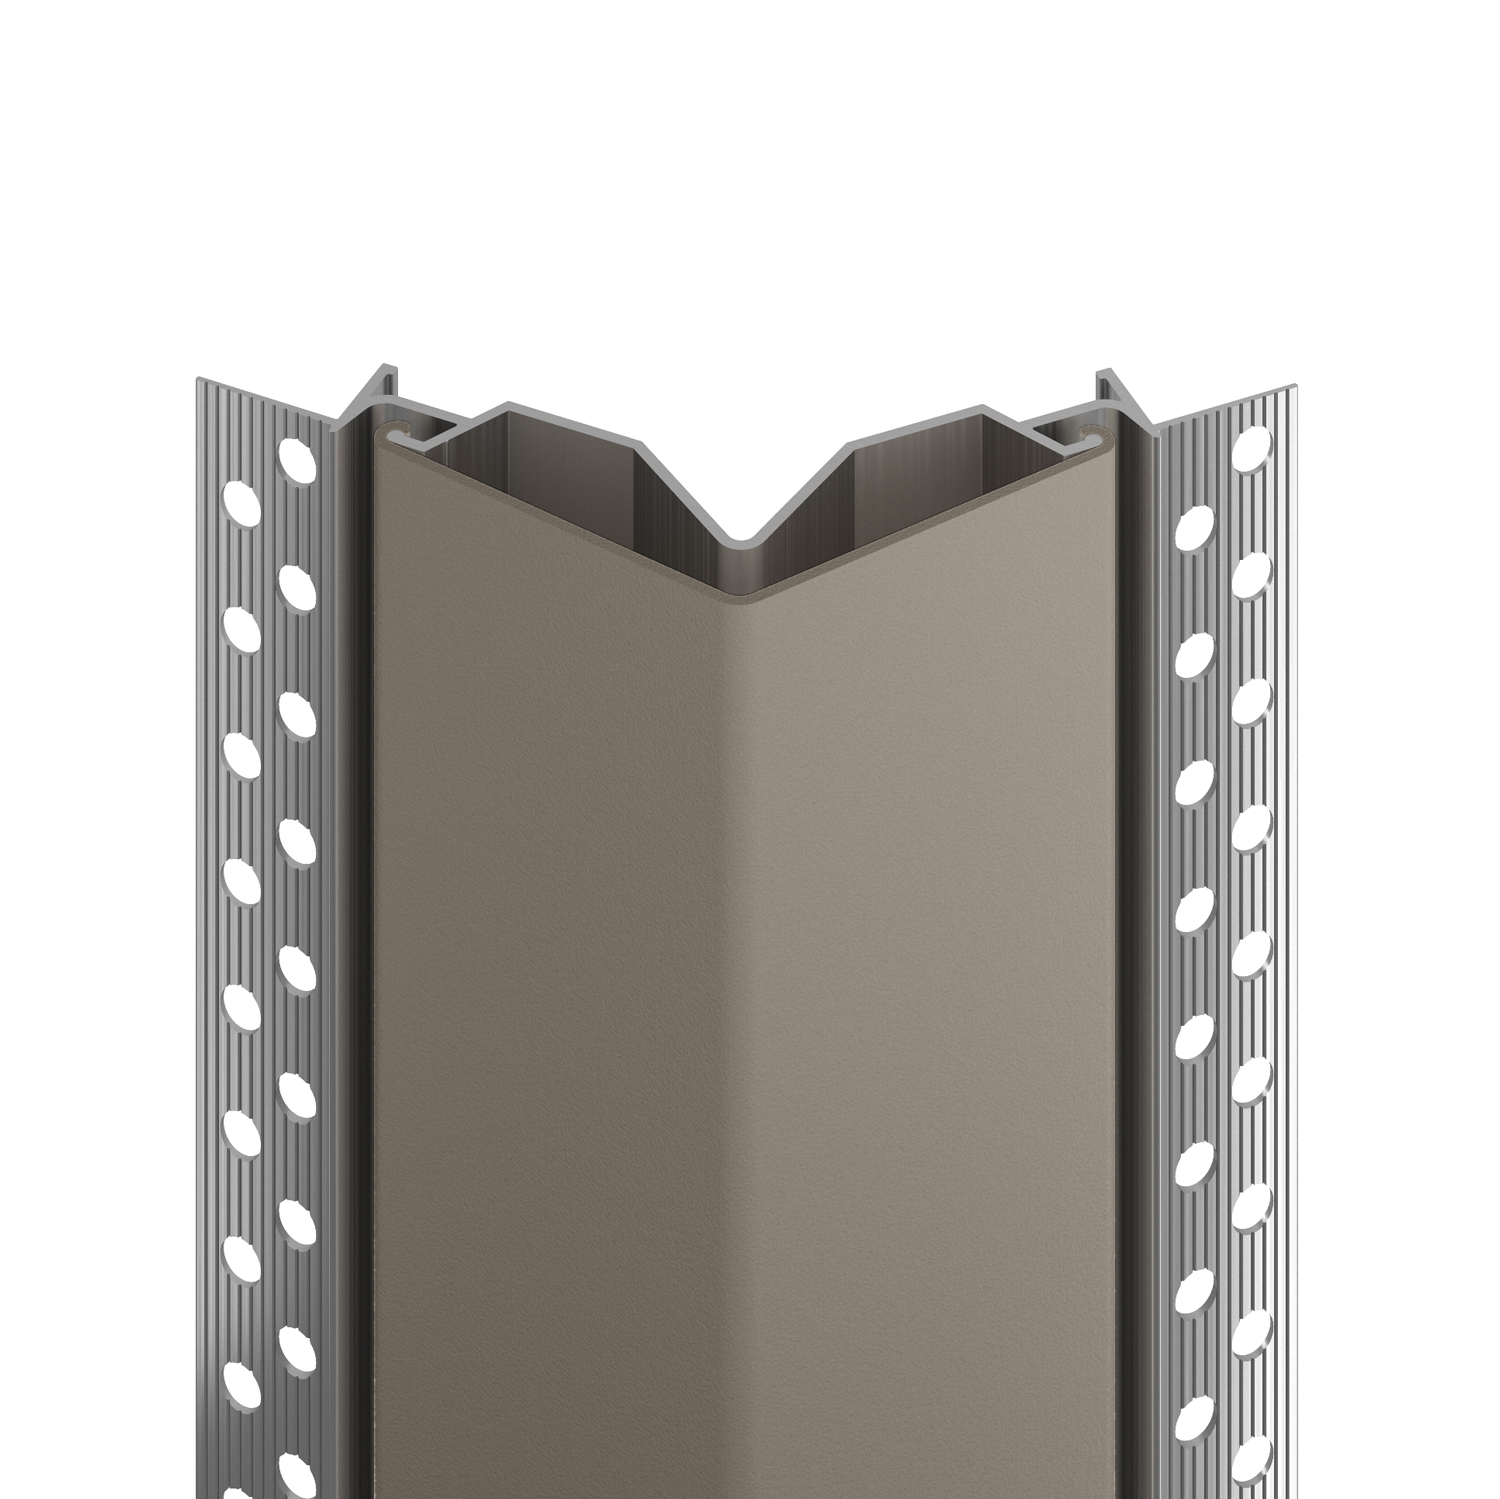 130F flush mount corner guard in shiprock gray